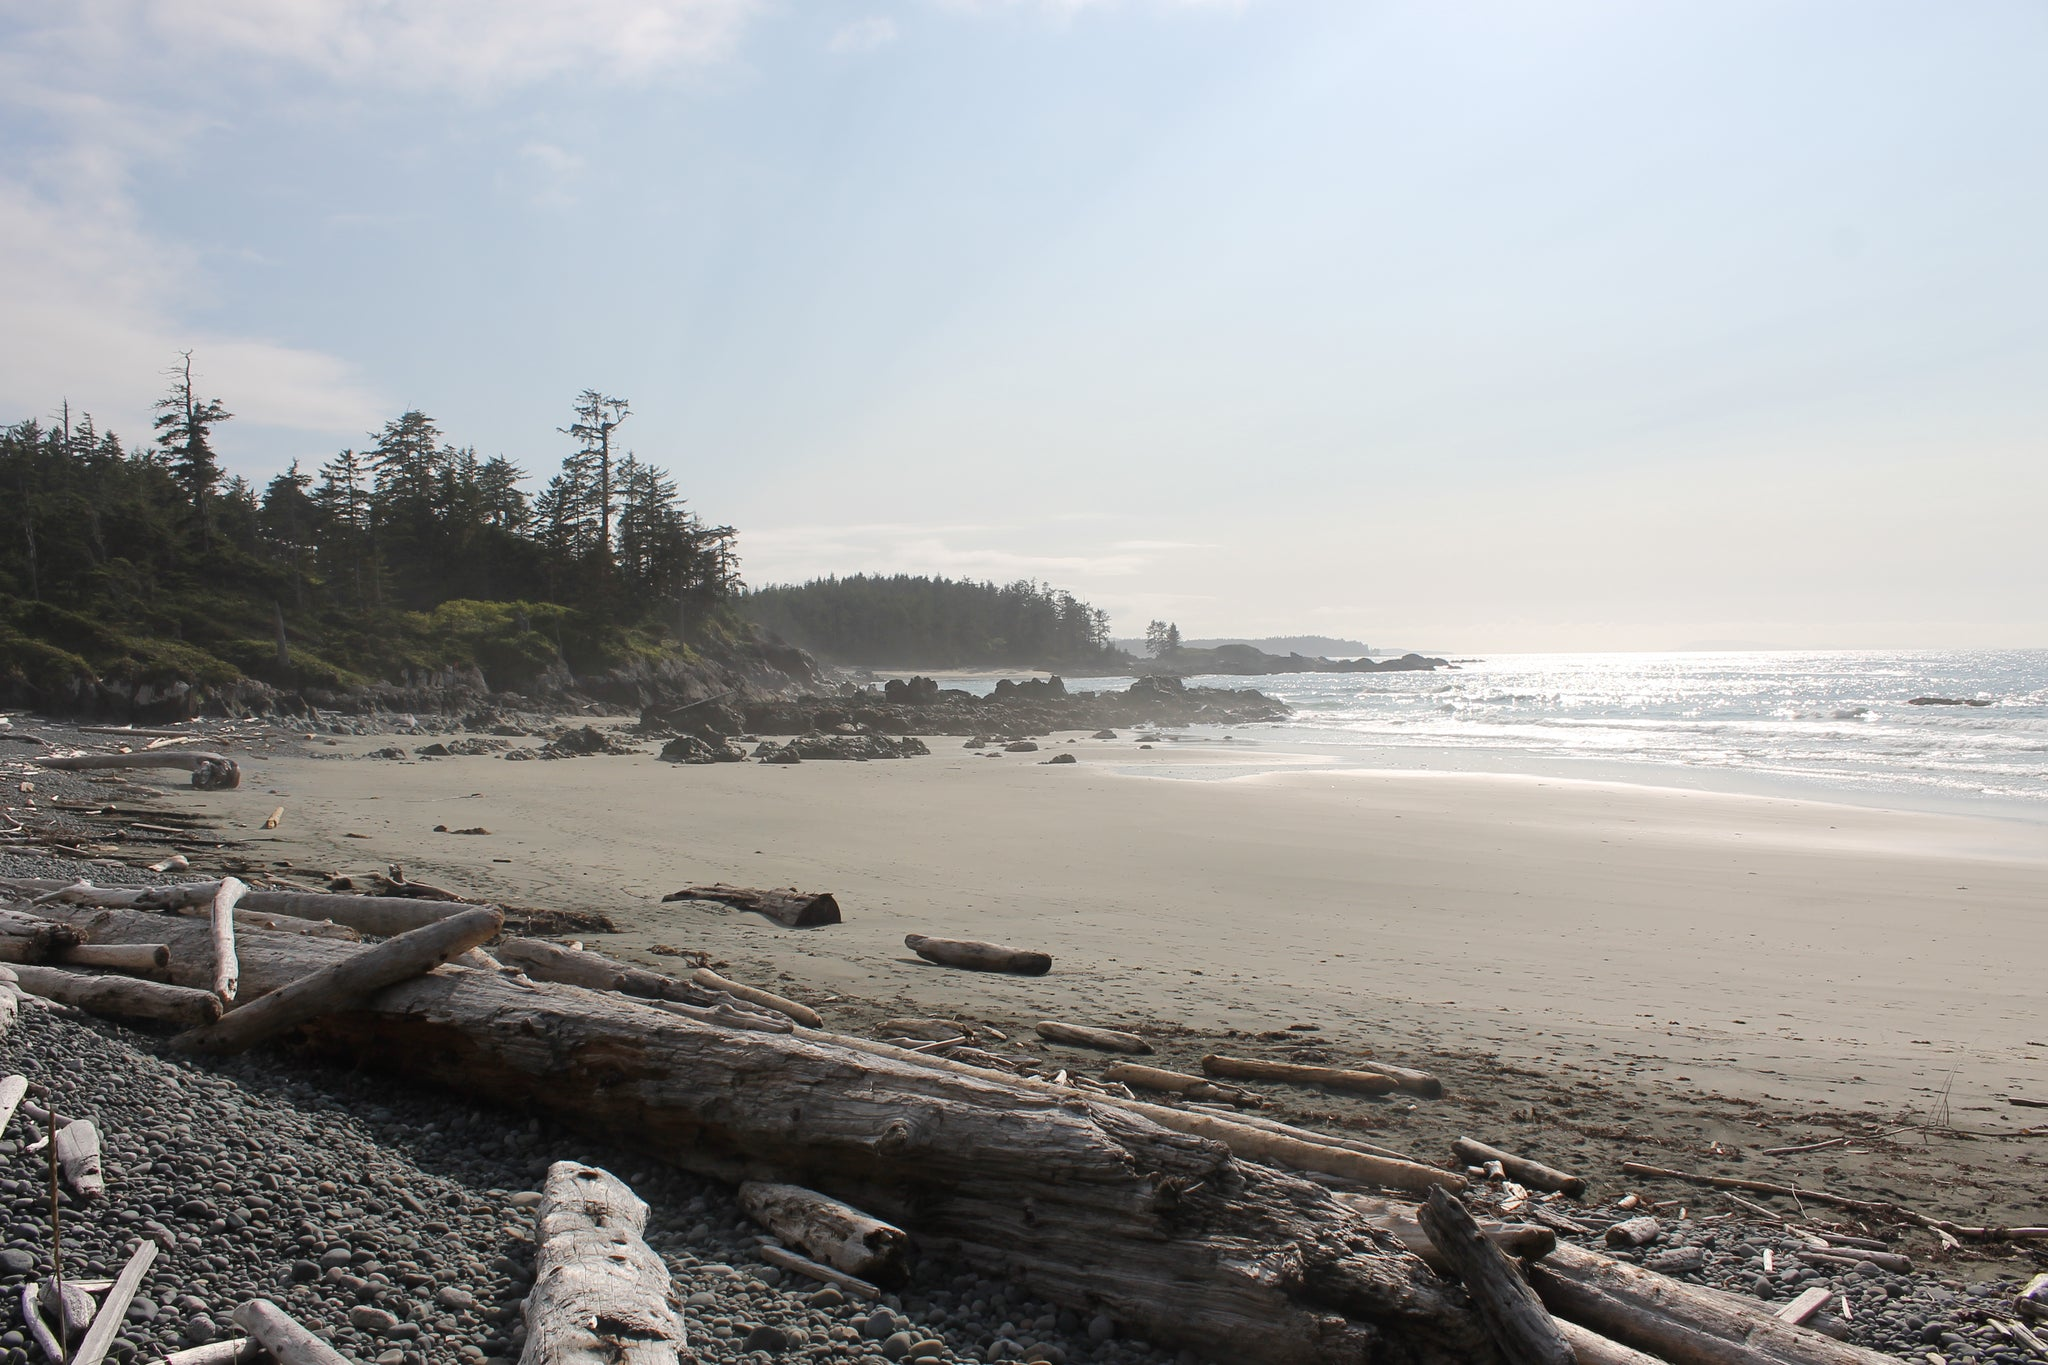 North Coast Trail: Stories in the Sand